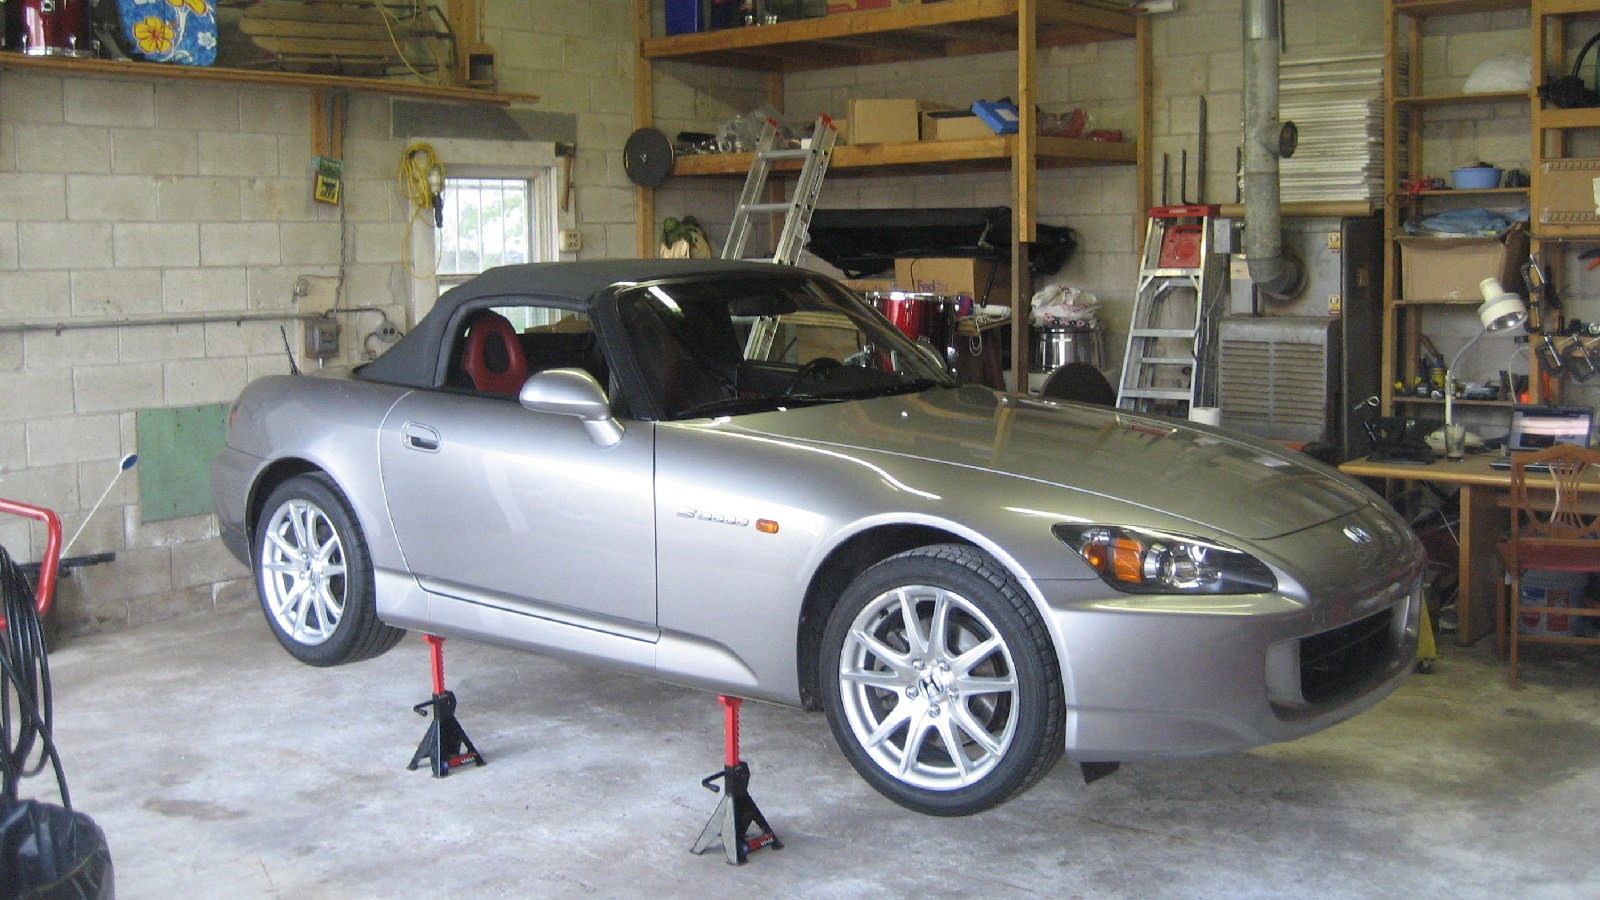 The S2000 is a Great Car to Wrench On